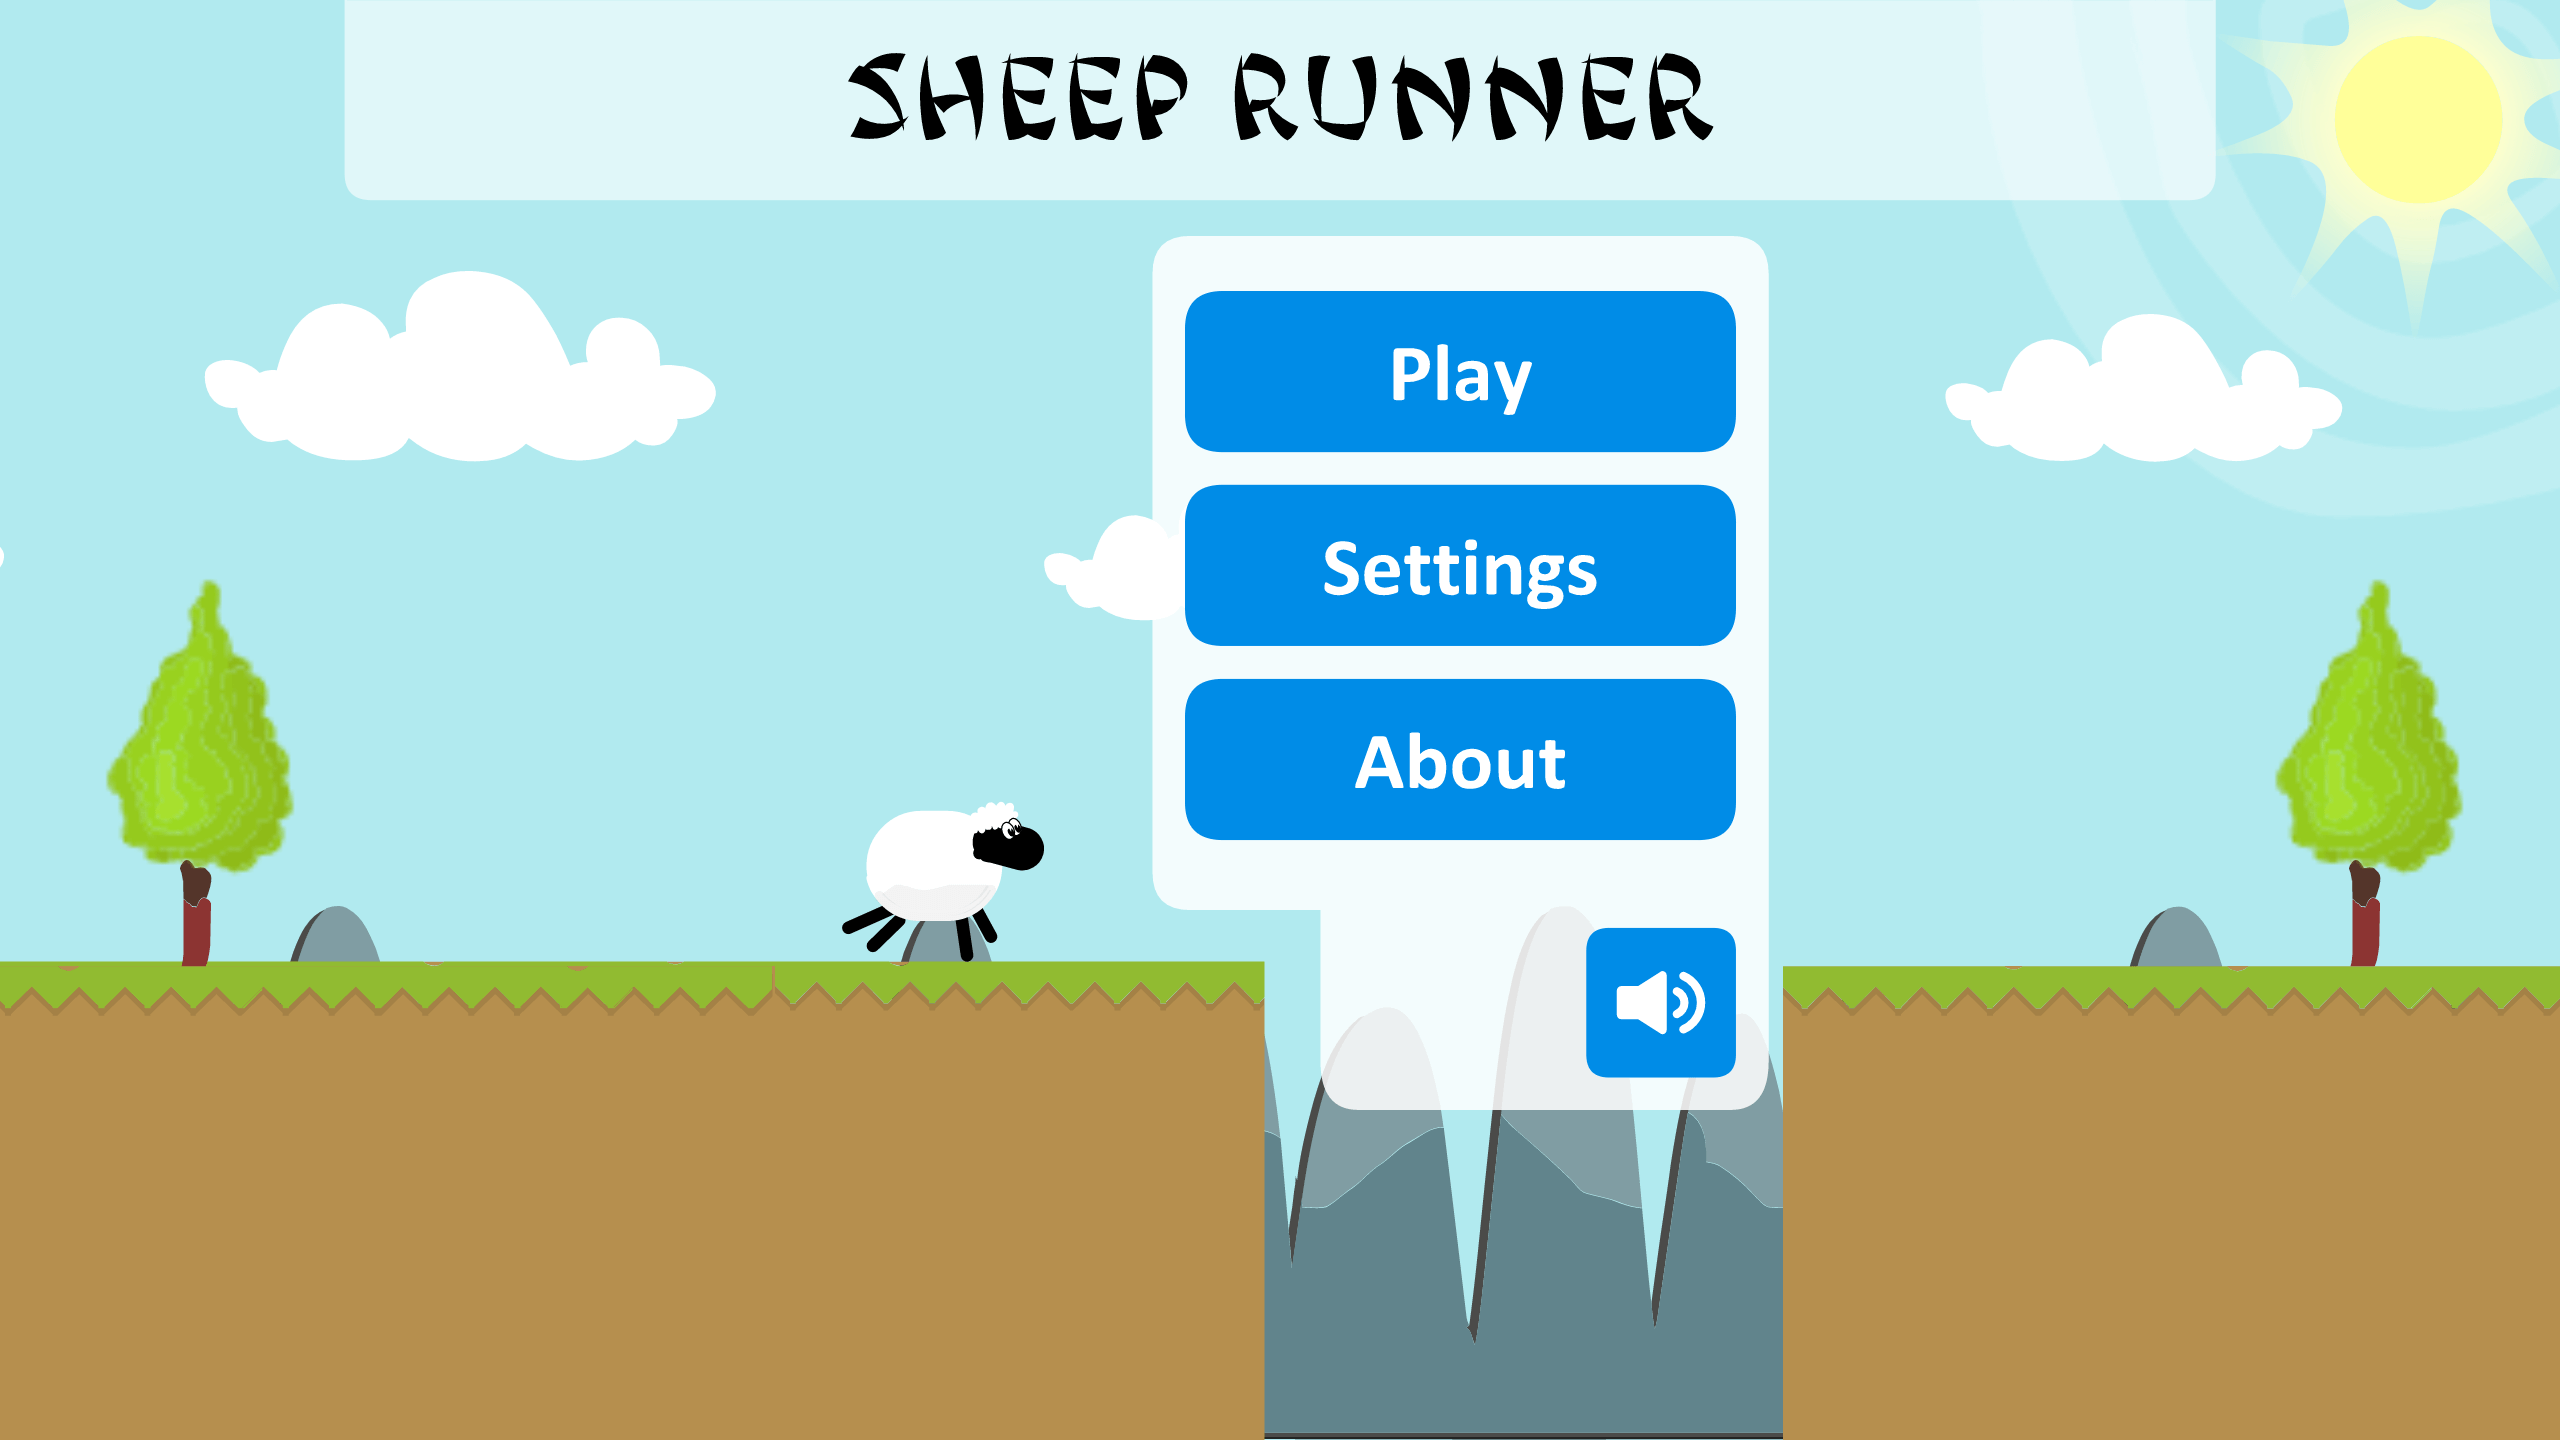 Sheep Runner